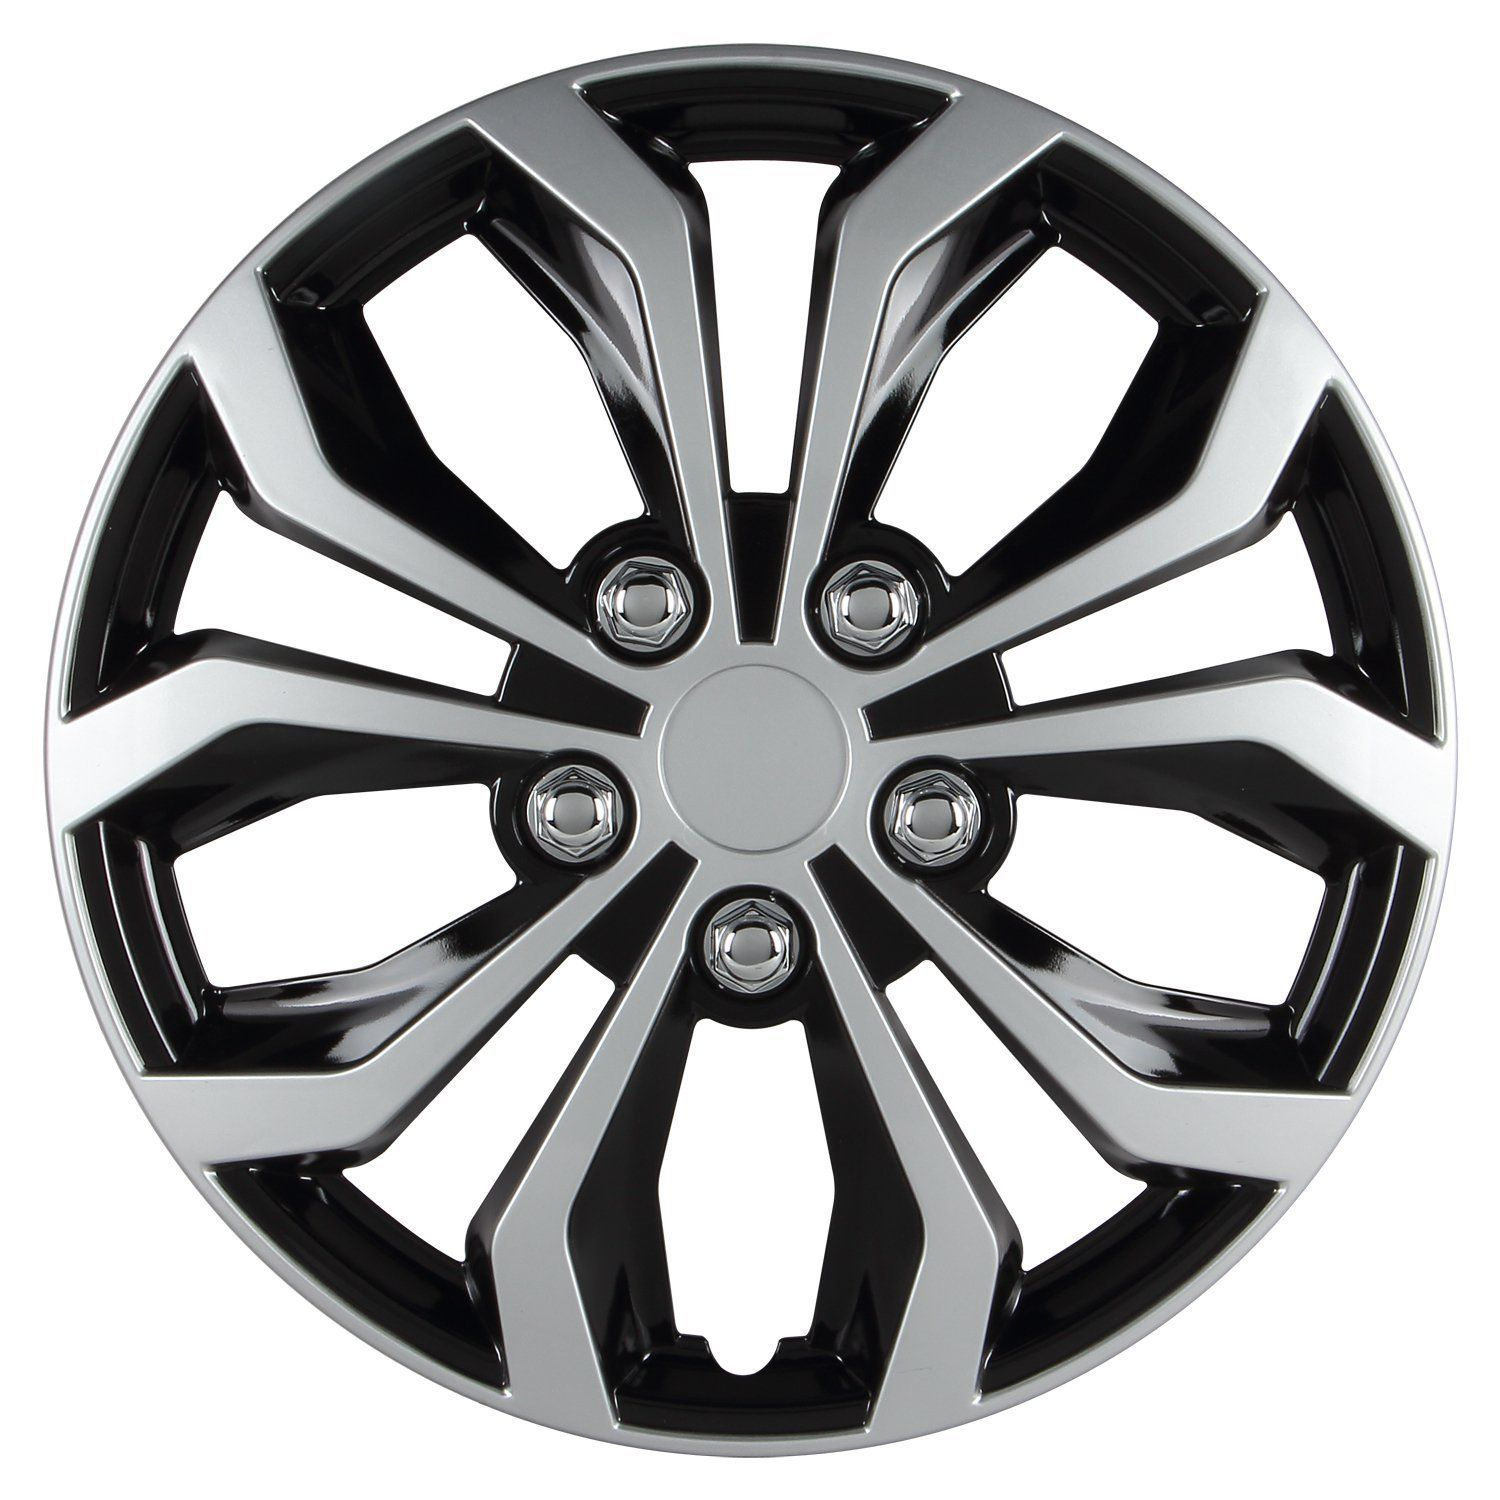 Hubcap, Black And Silver Finish Universal Spyder Performance 14 Inch Hubcaps Set